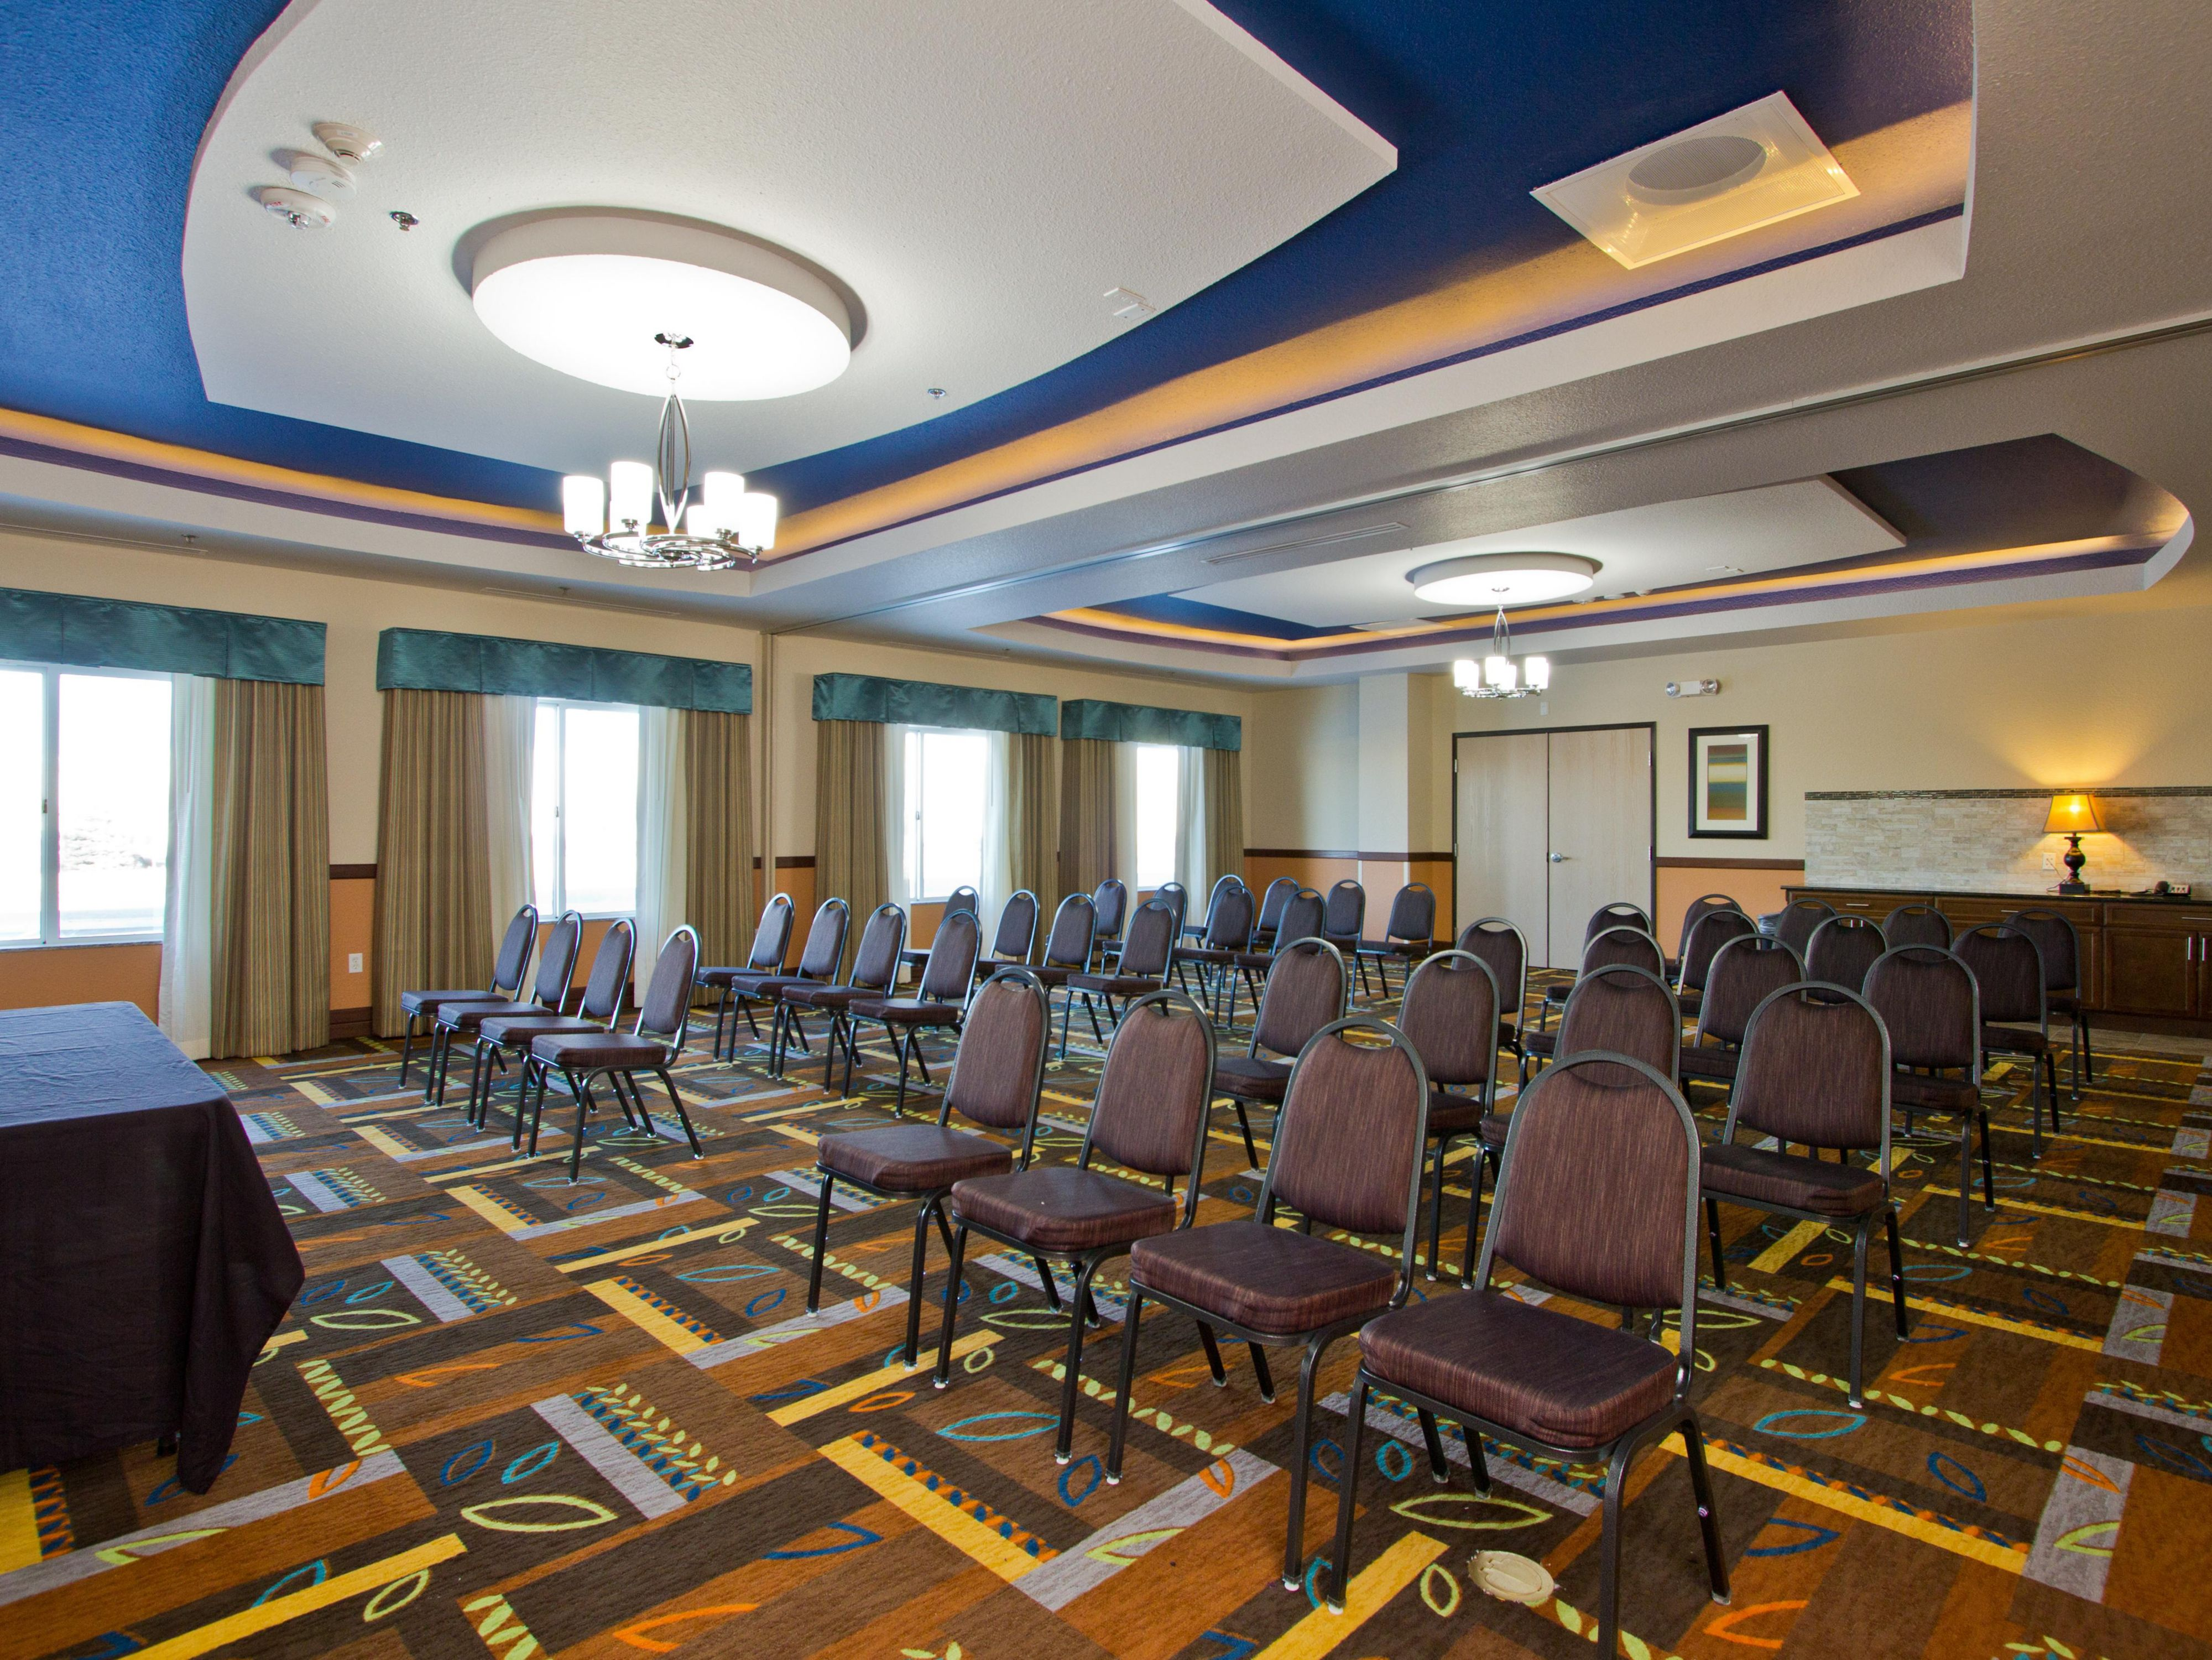 Holiday Inn Express and Suites Meeting & Banquet Space Free WiFi